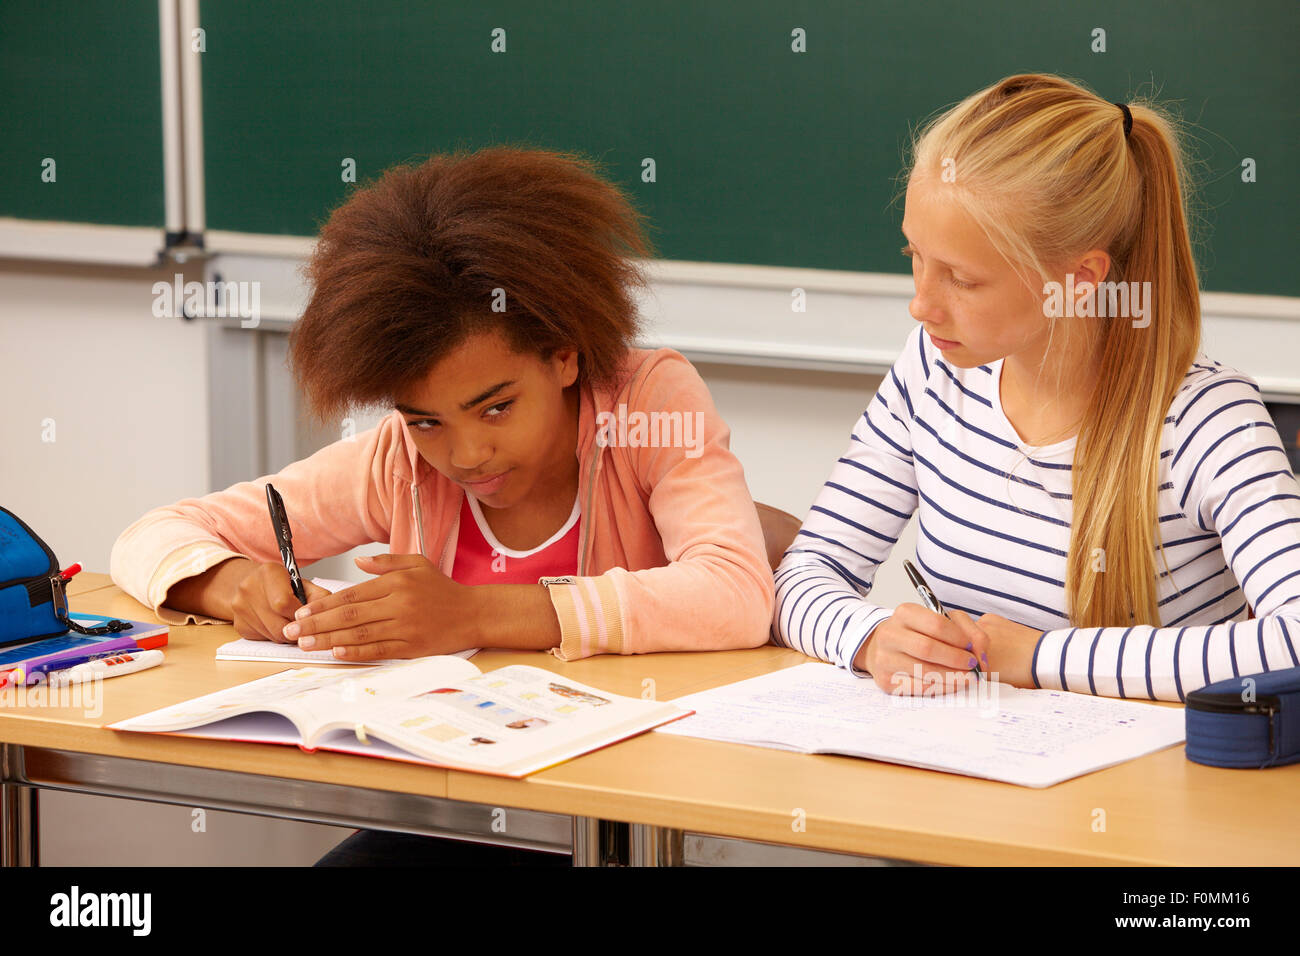 Girl allows her classmate not to copy - Stock Image